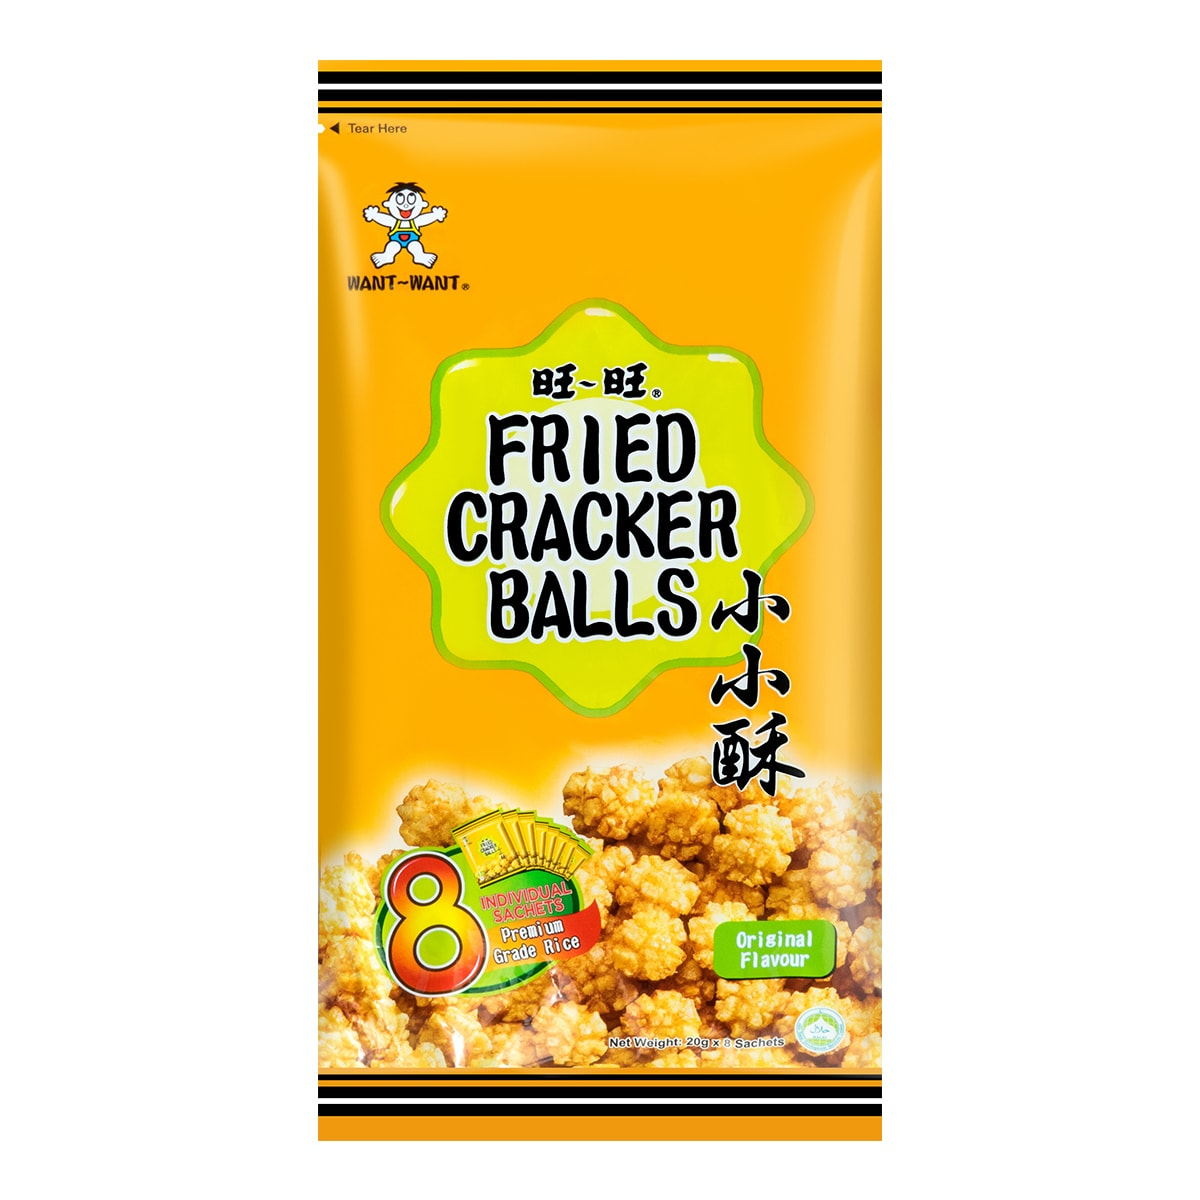 WANT WANT Fried Cracker Balls 8Packs Individual Sachets 160g